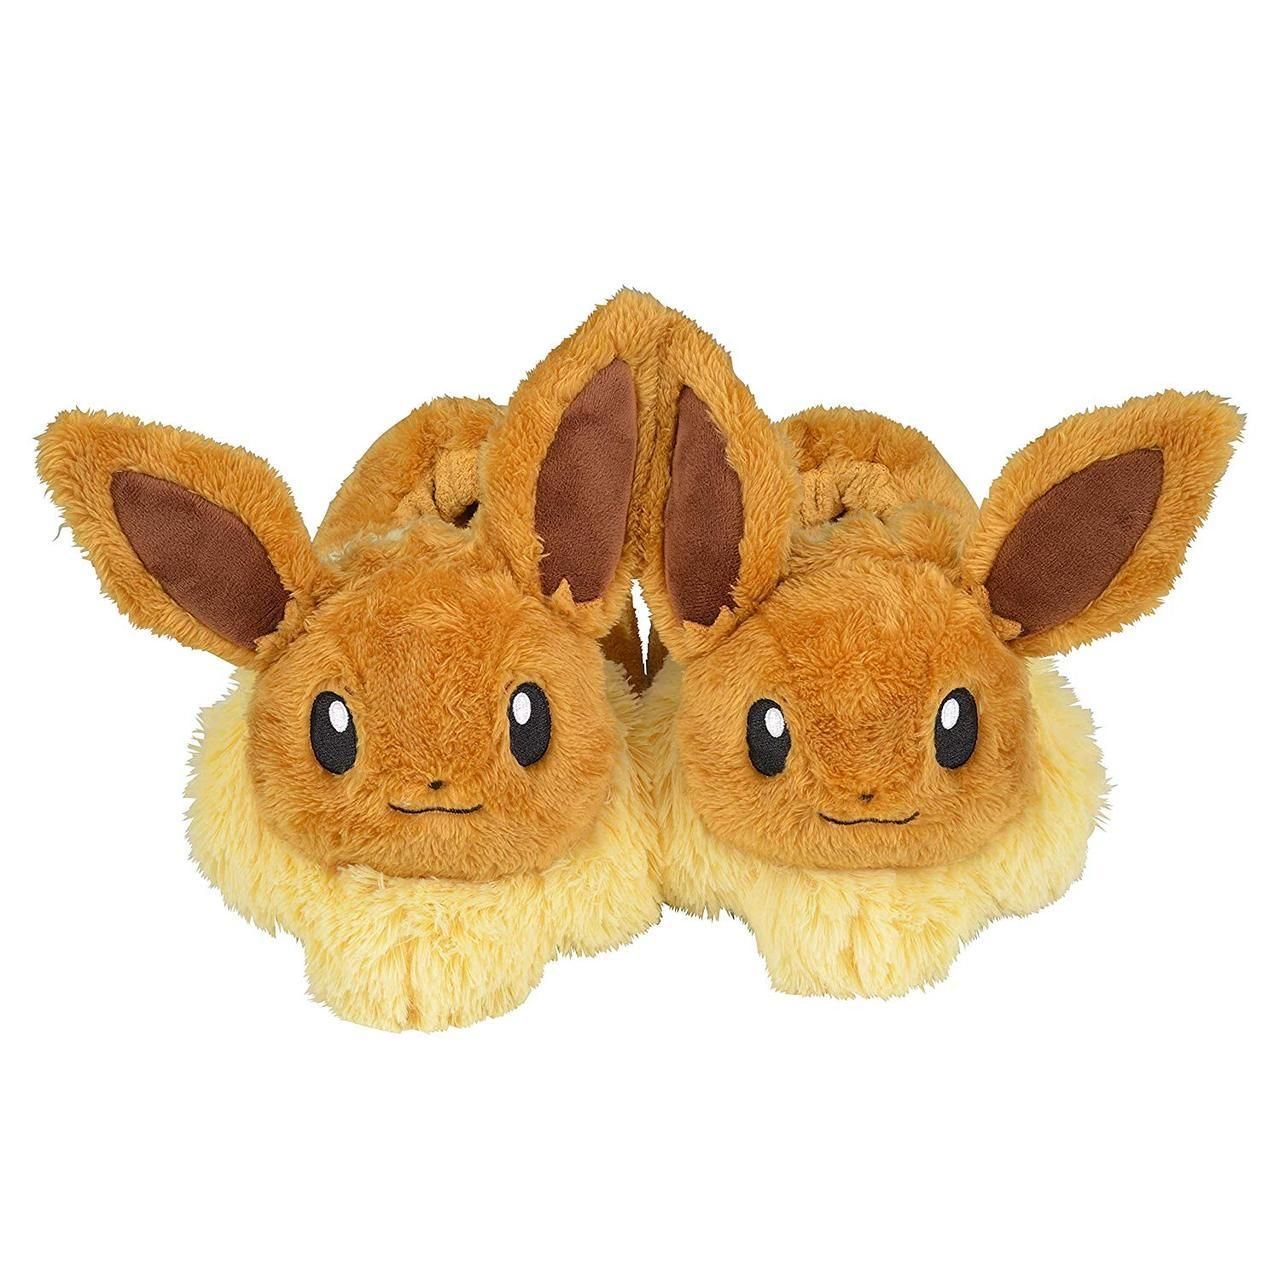 The Pokemon Center released a new line ofPokemon Slippers - #90s #anime #cartoons #center #clothes #cute #ditto #eevee #fashion #gameboy #games #gaming #geek #geekery #gifts #japan #kanto #kawaii #mareep #merch #monsters #nineties #pikachu #pocket #pokemon #slippers #video